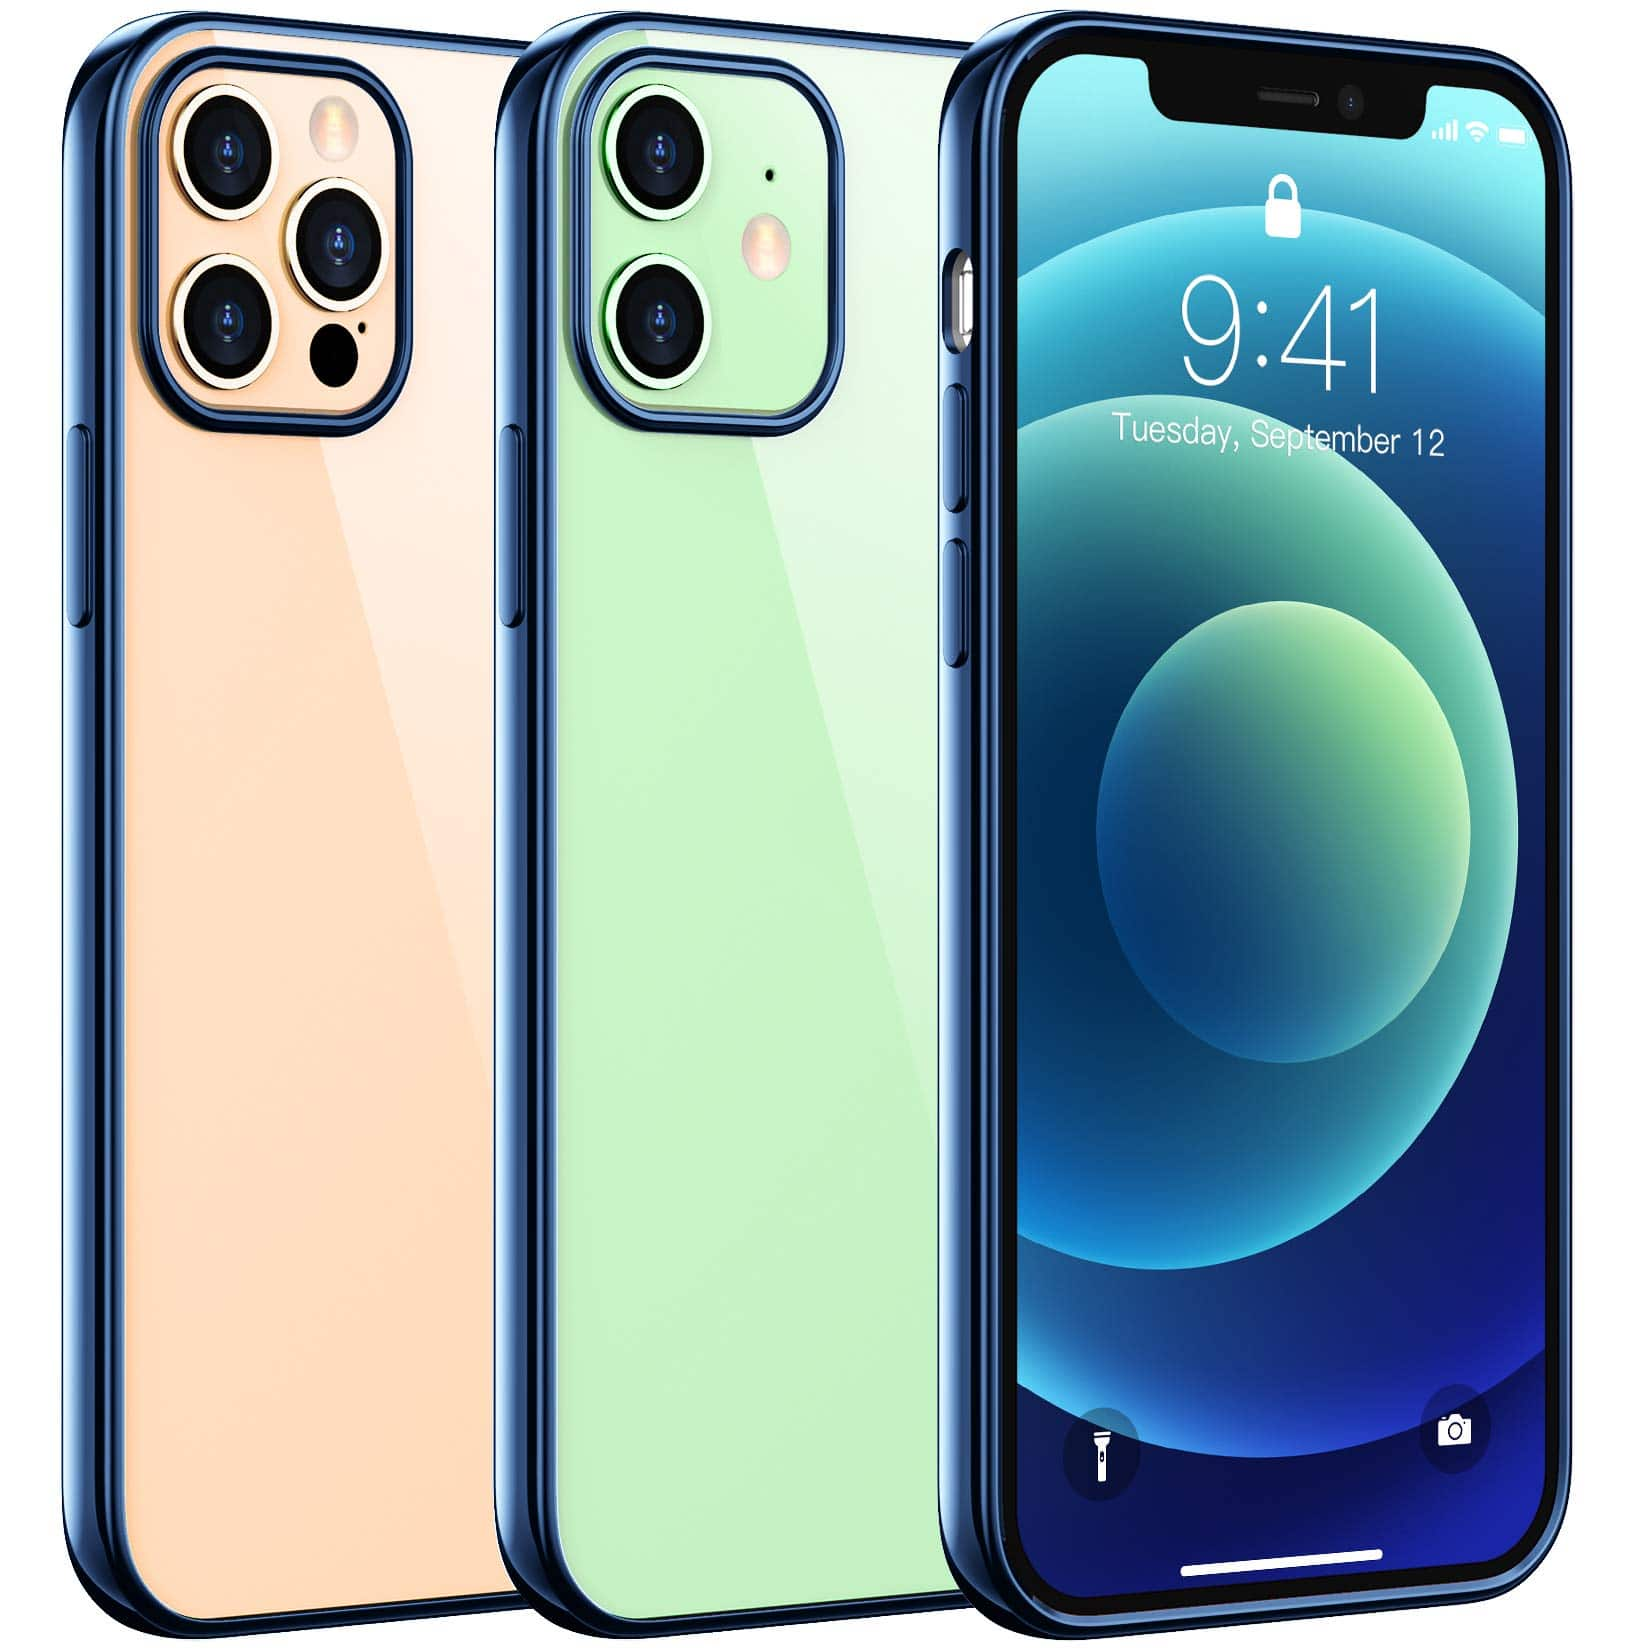 Clear Case Compatible with iPhone 12/ 12 Pro / Support wireless charging (Color - Clear) $0.99 +  free S&H w/ Prime members at Amazon